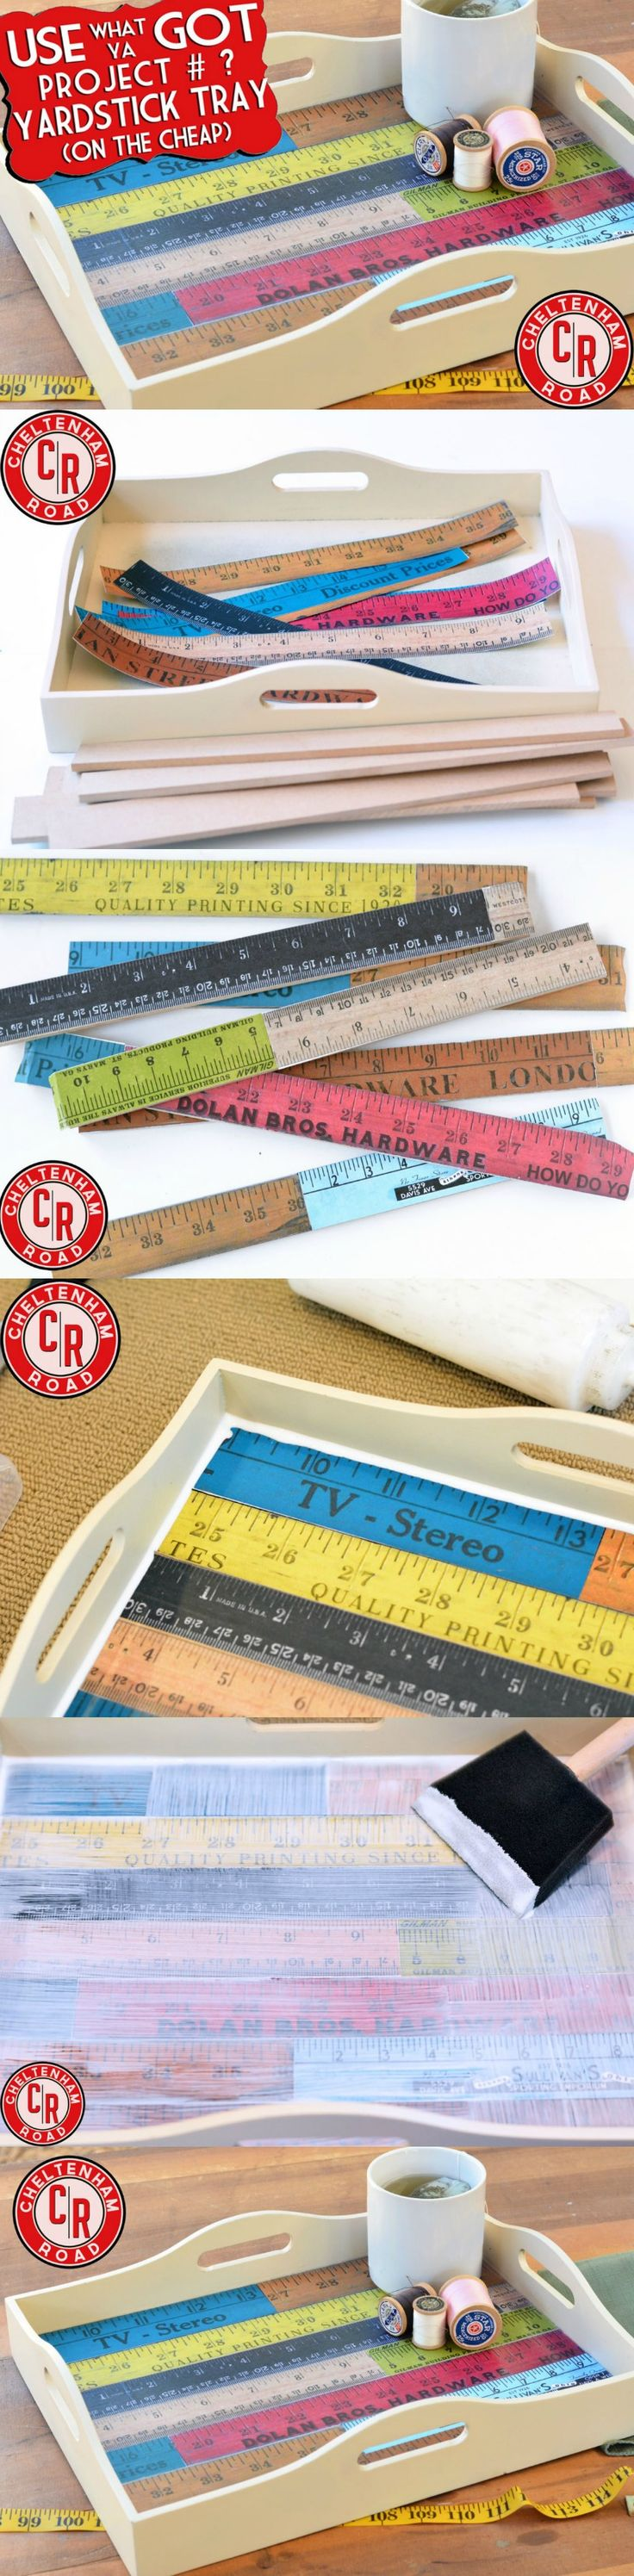 photo about Printable Yardstick identified as Do it yourself Yardstick Tray with Printables crafts Do it yourself, Mod podge